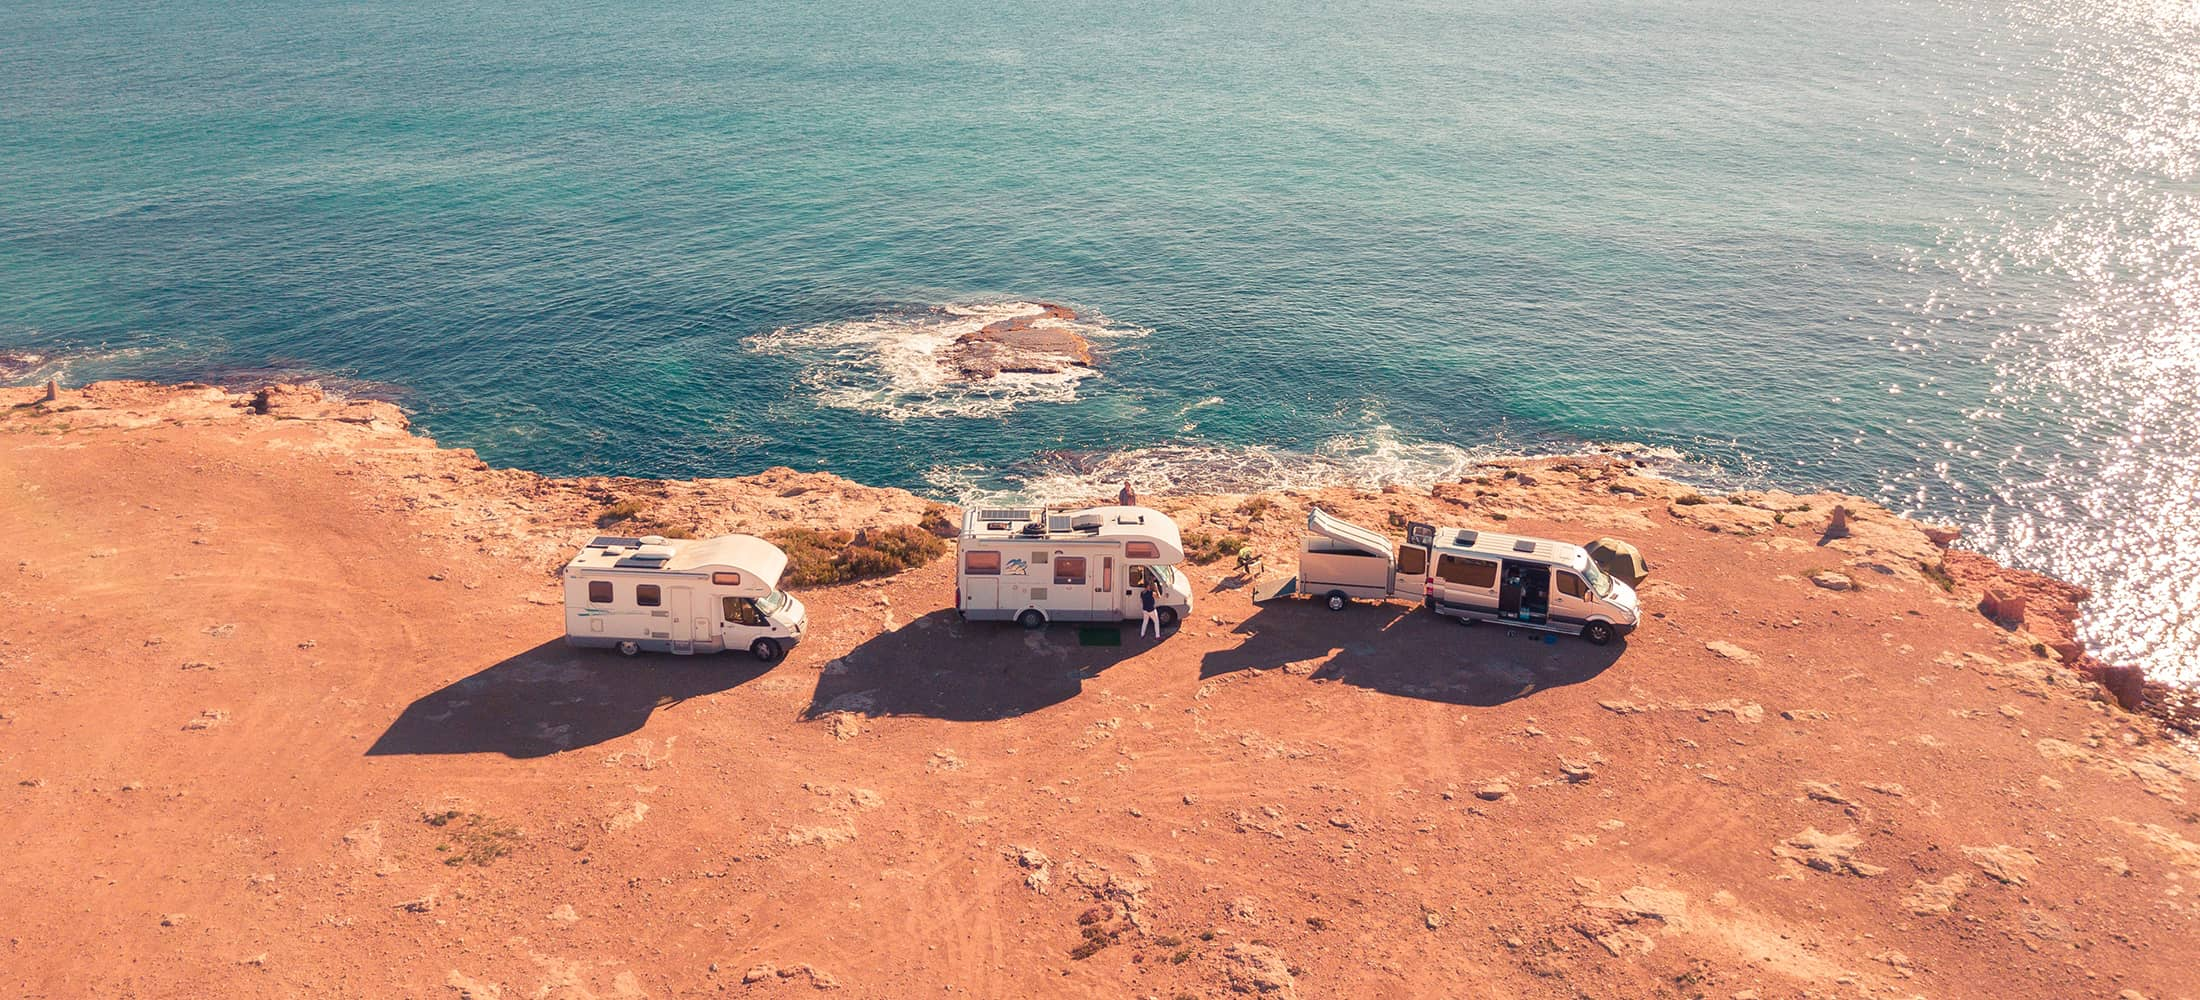 three campers near the ocean